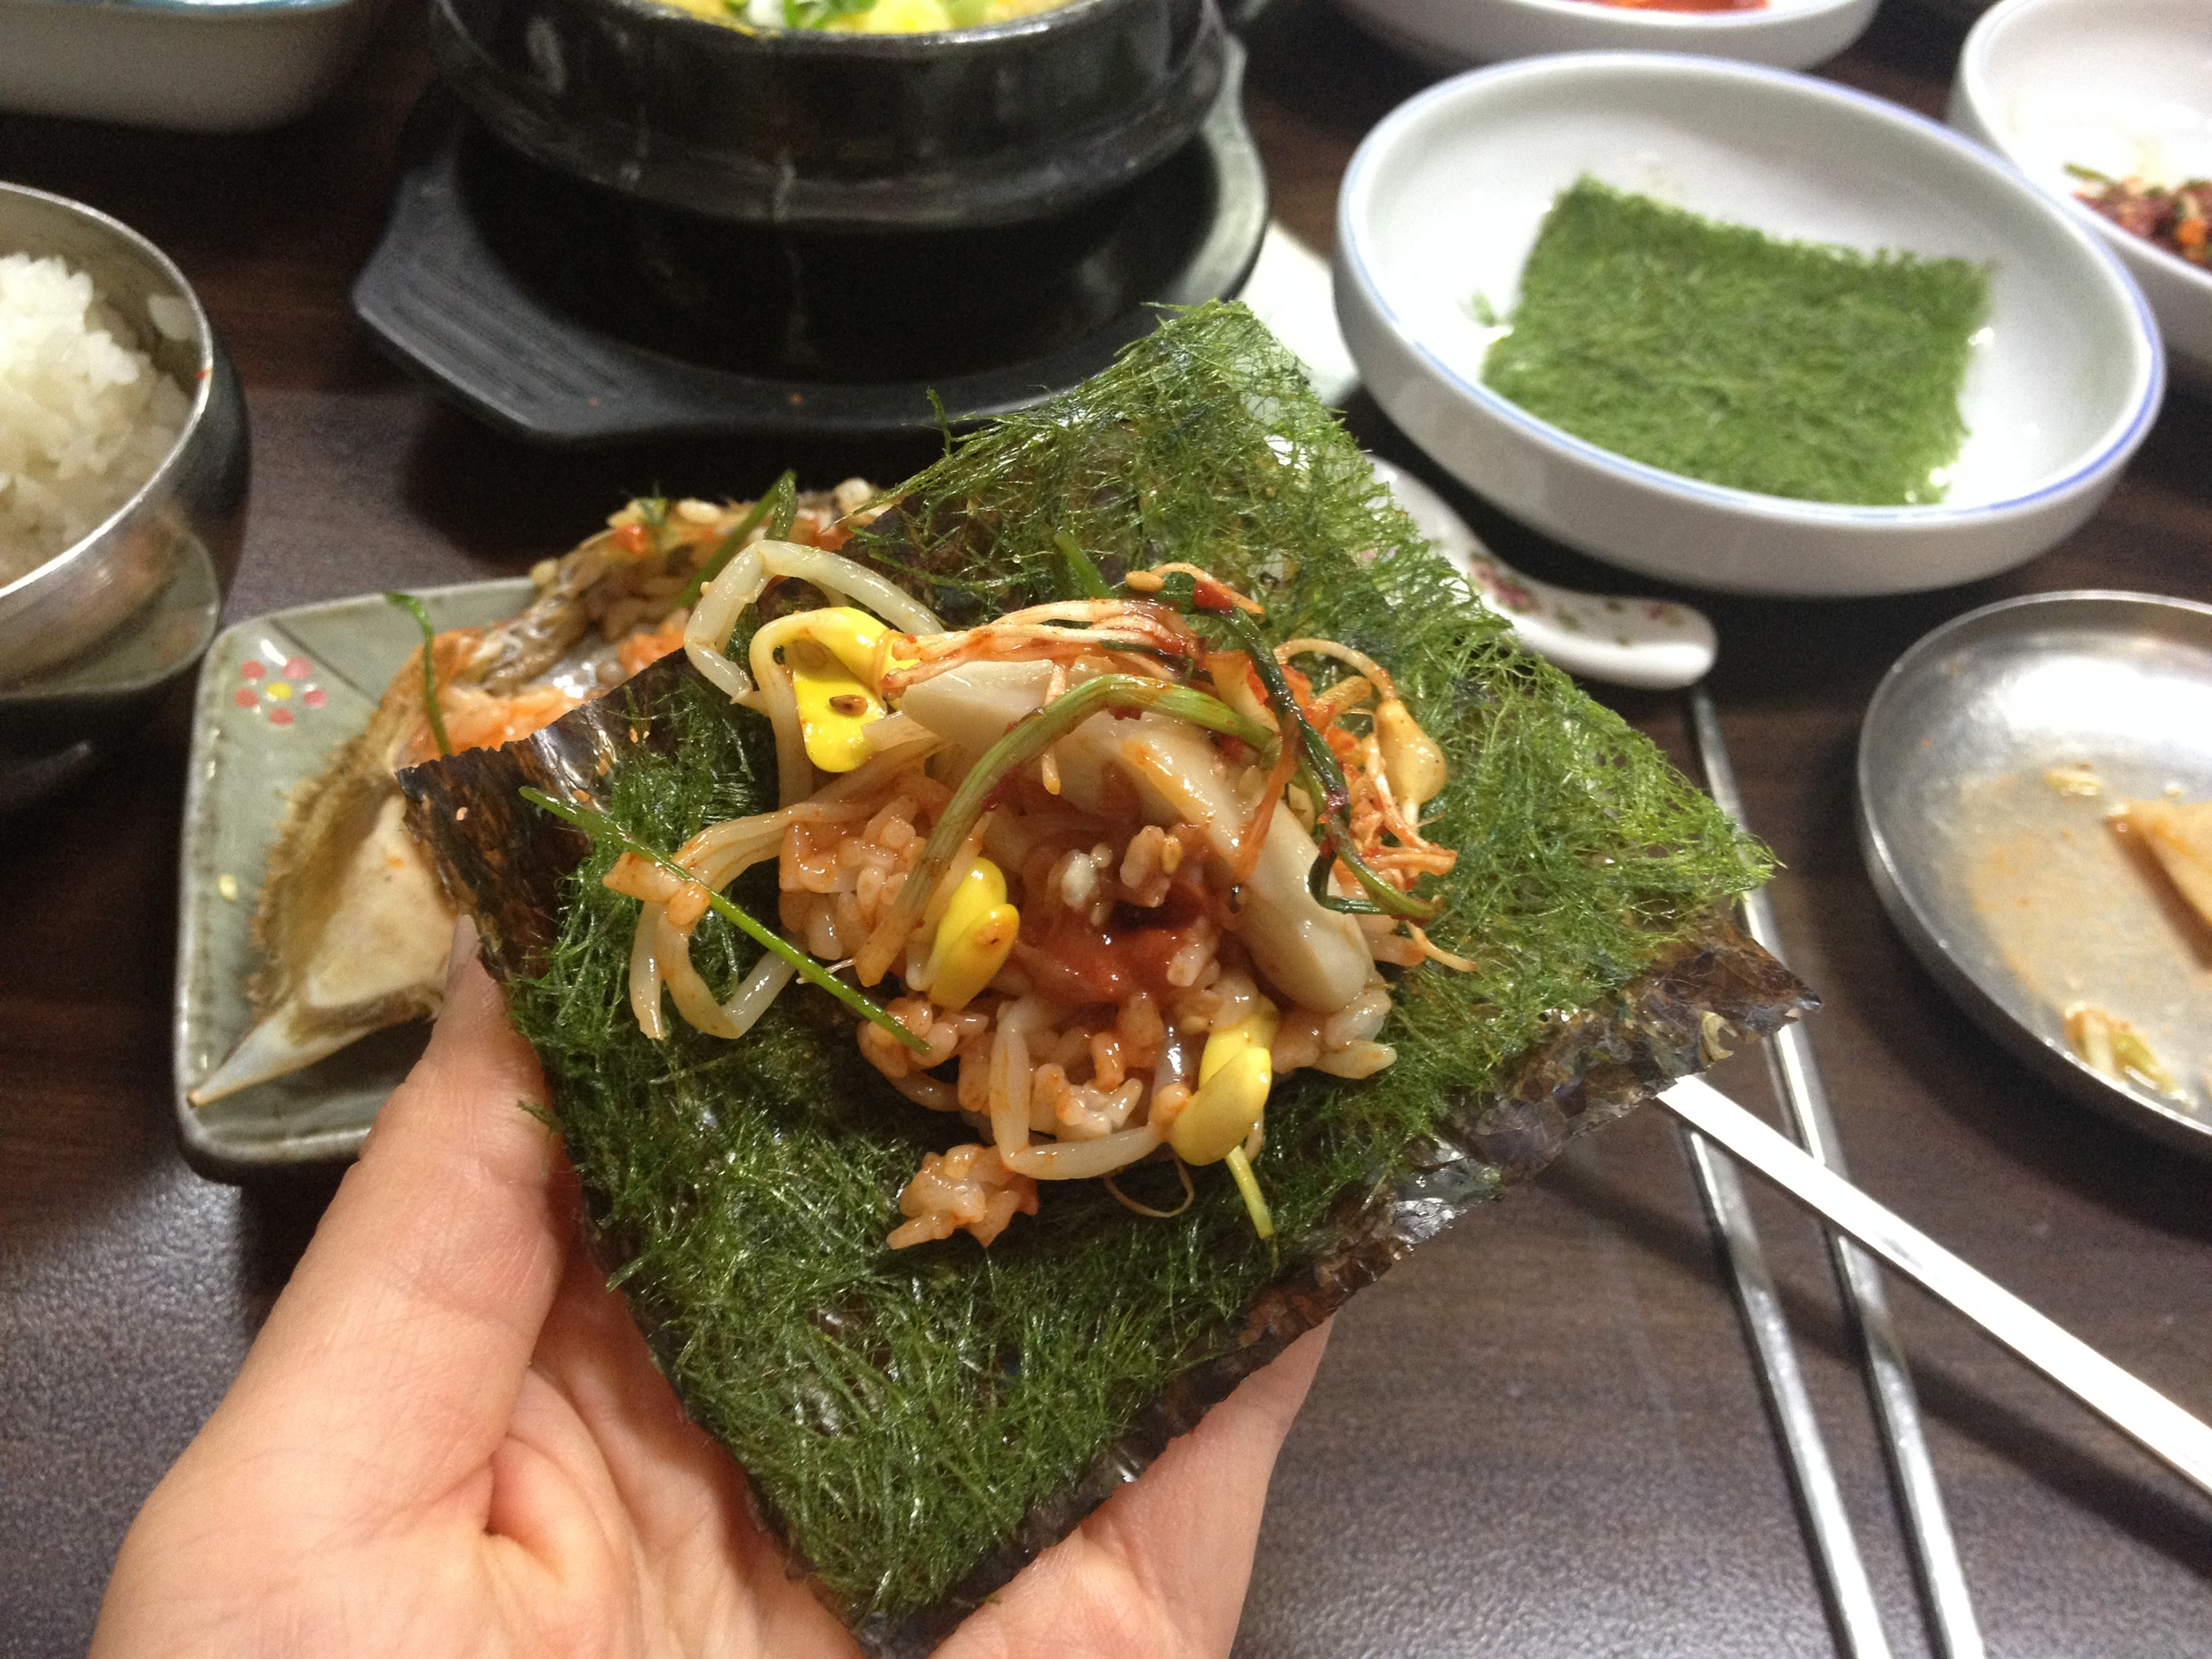 Really, you can combine the seaweed with filling of whatever you like to suit your taste!